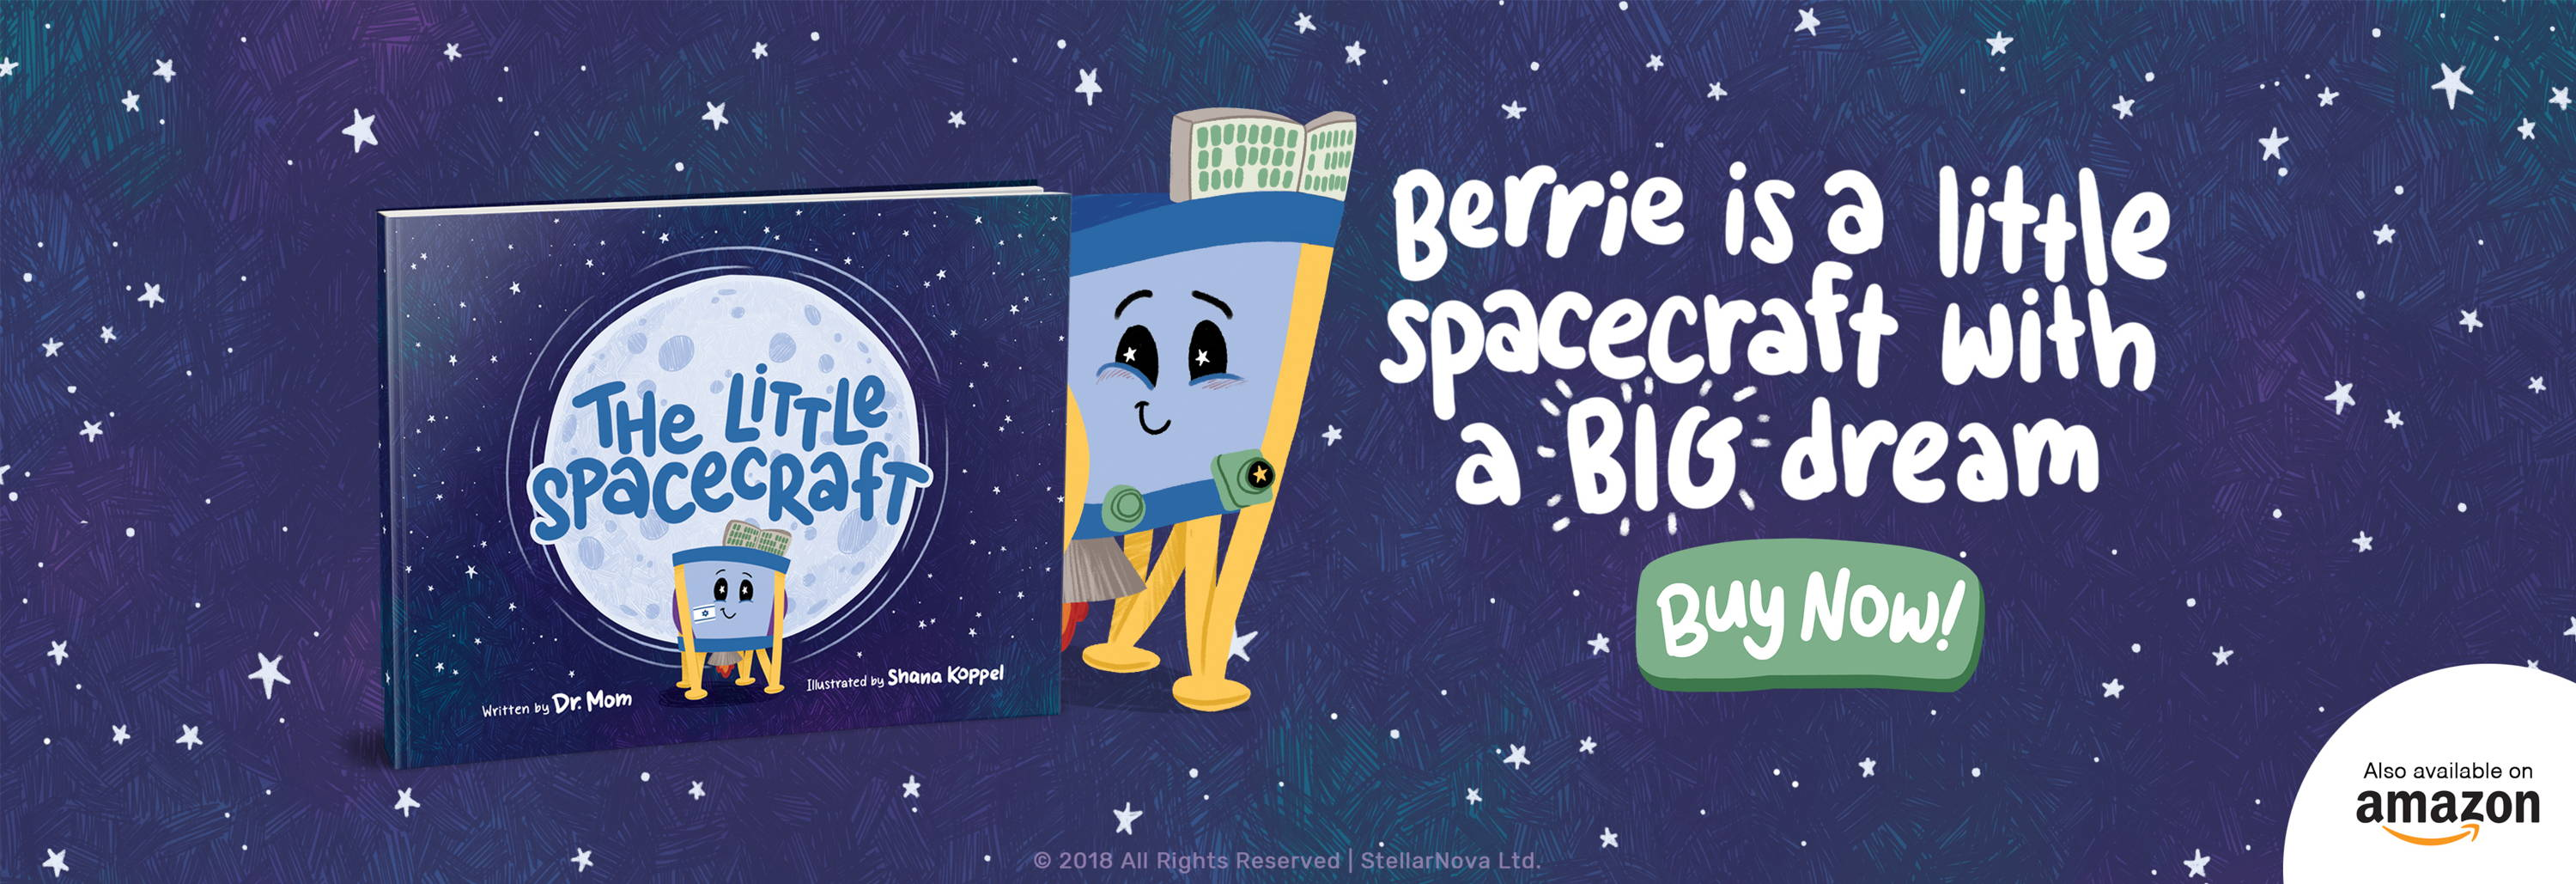 The Little Spacecraft Book by Dr. Mom